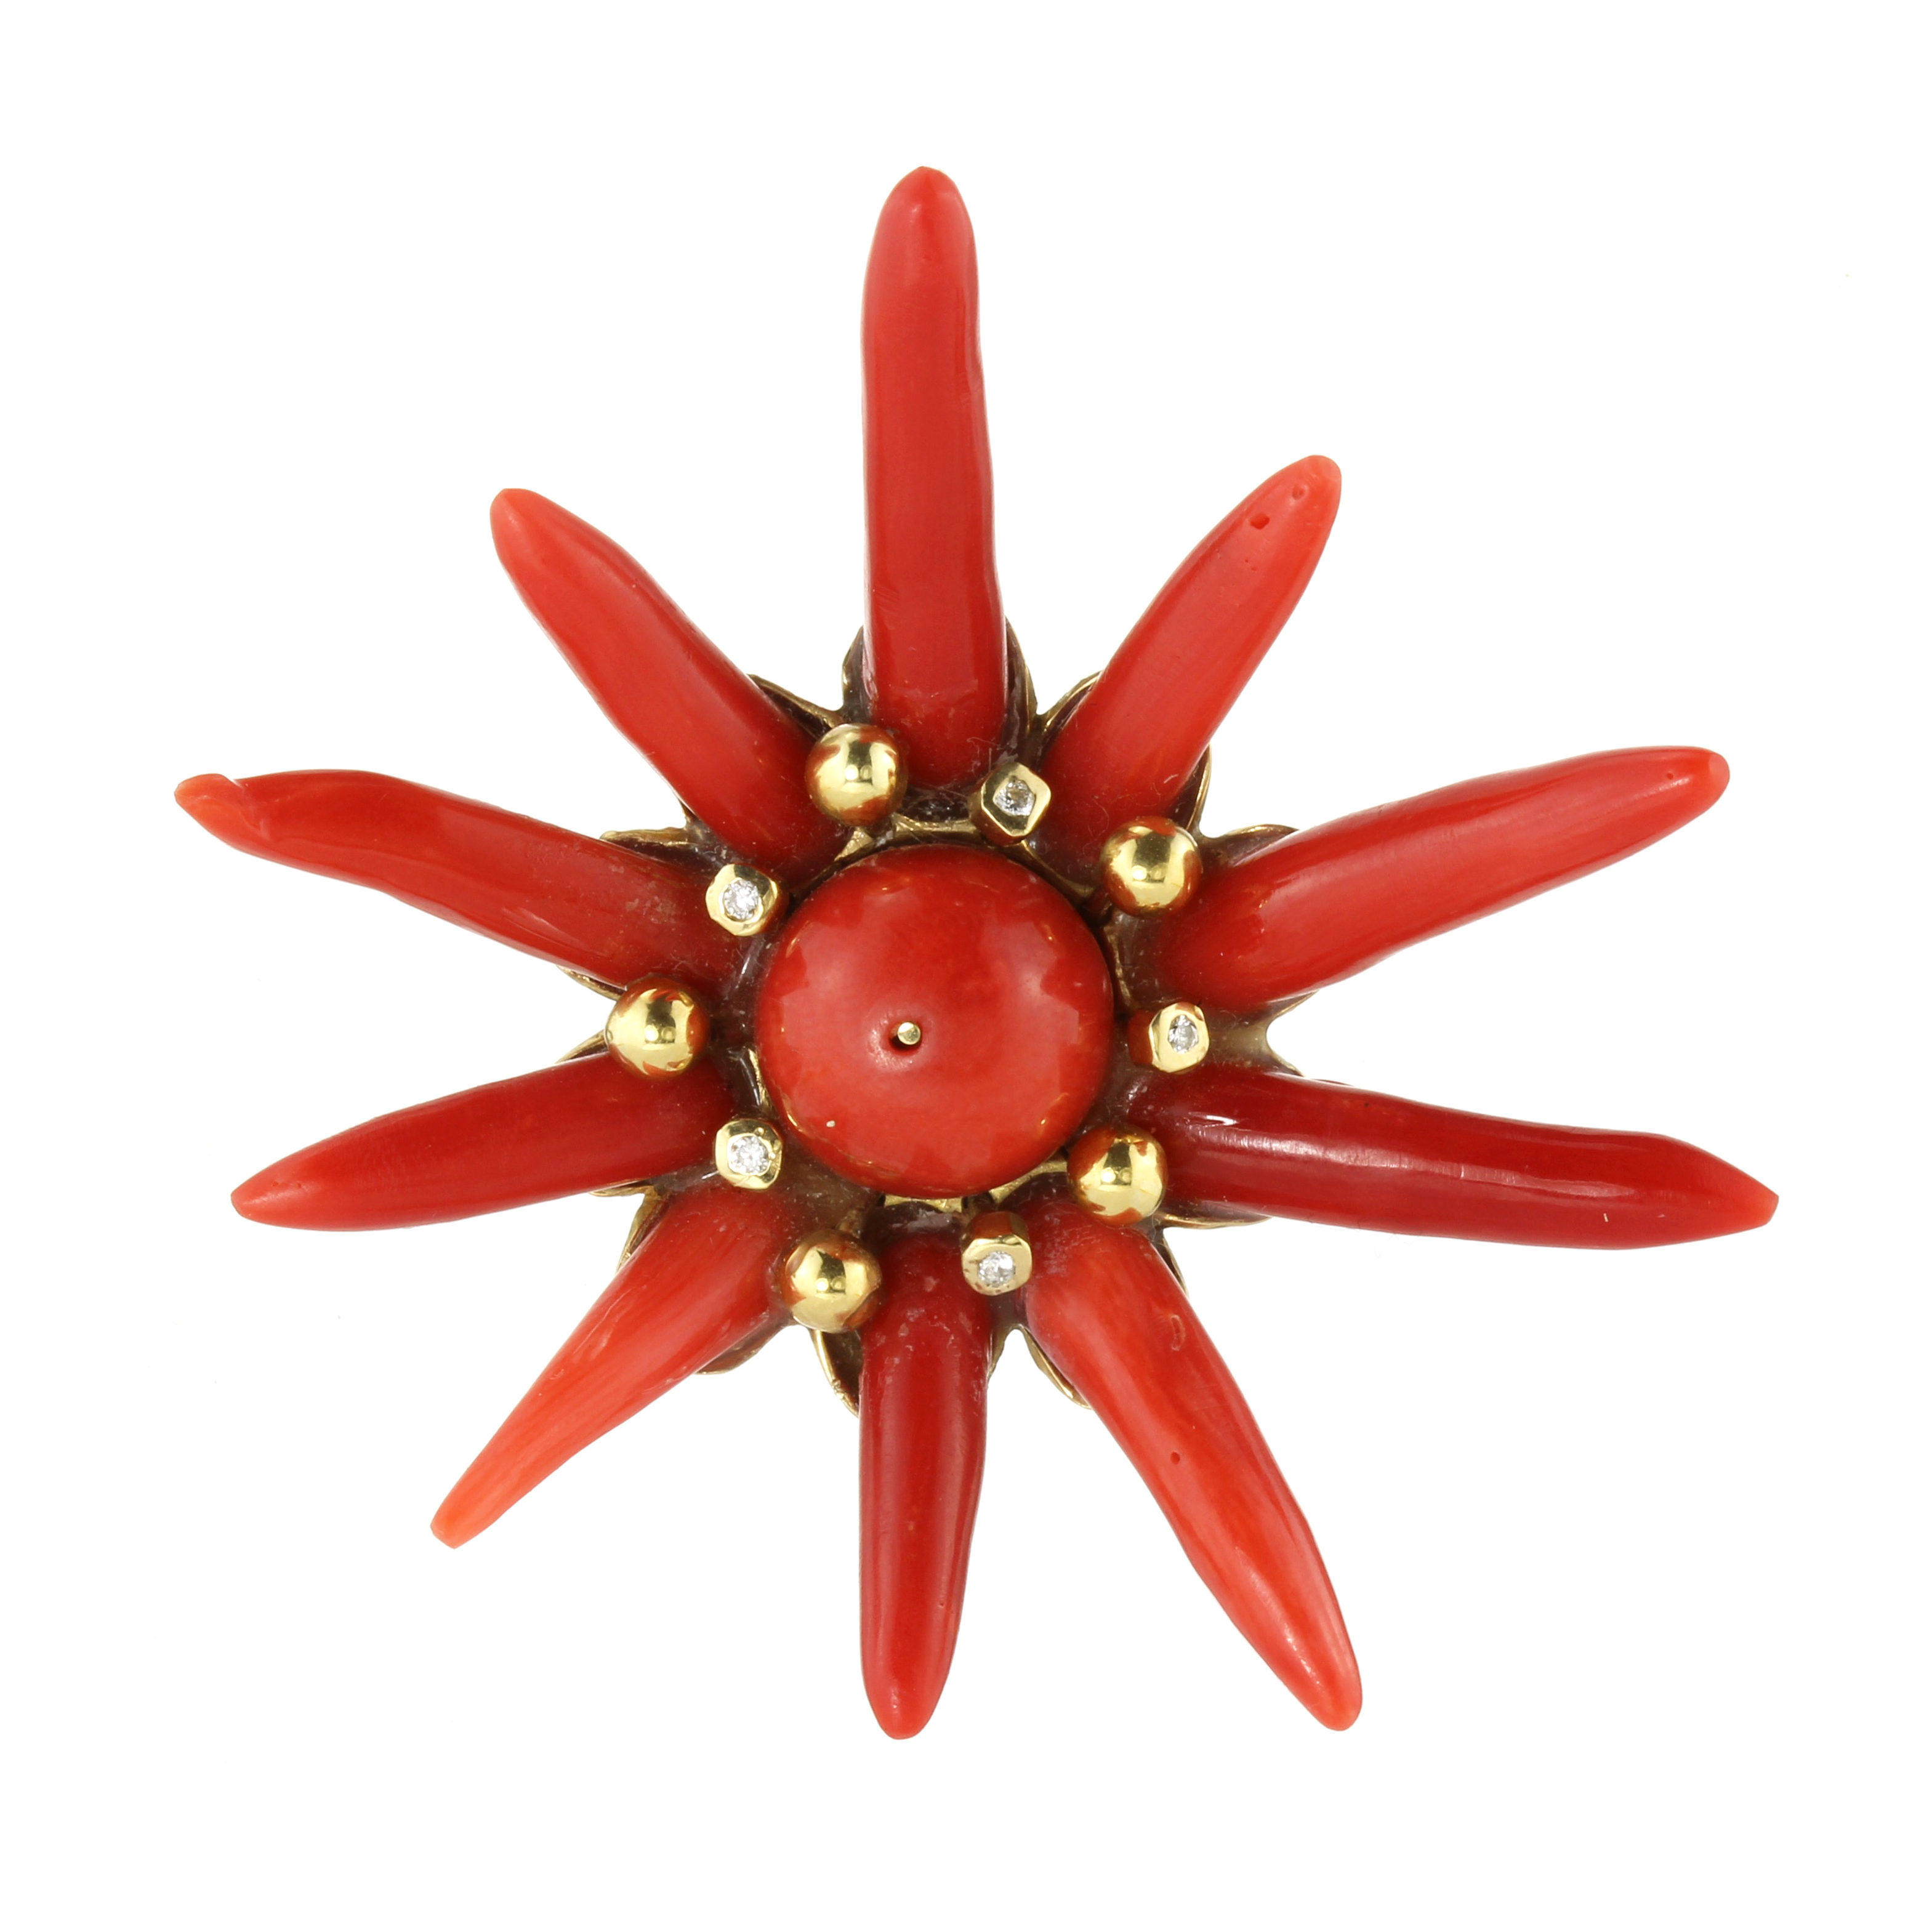 Los 53 - AN CORAL PENDANT in 18ct yellow gold, set with a central polished coral bead of 12mm surrounded by a